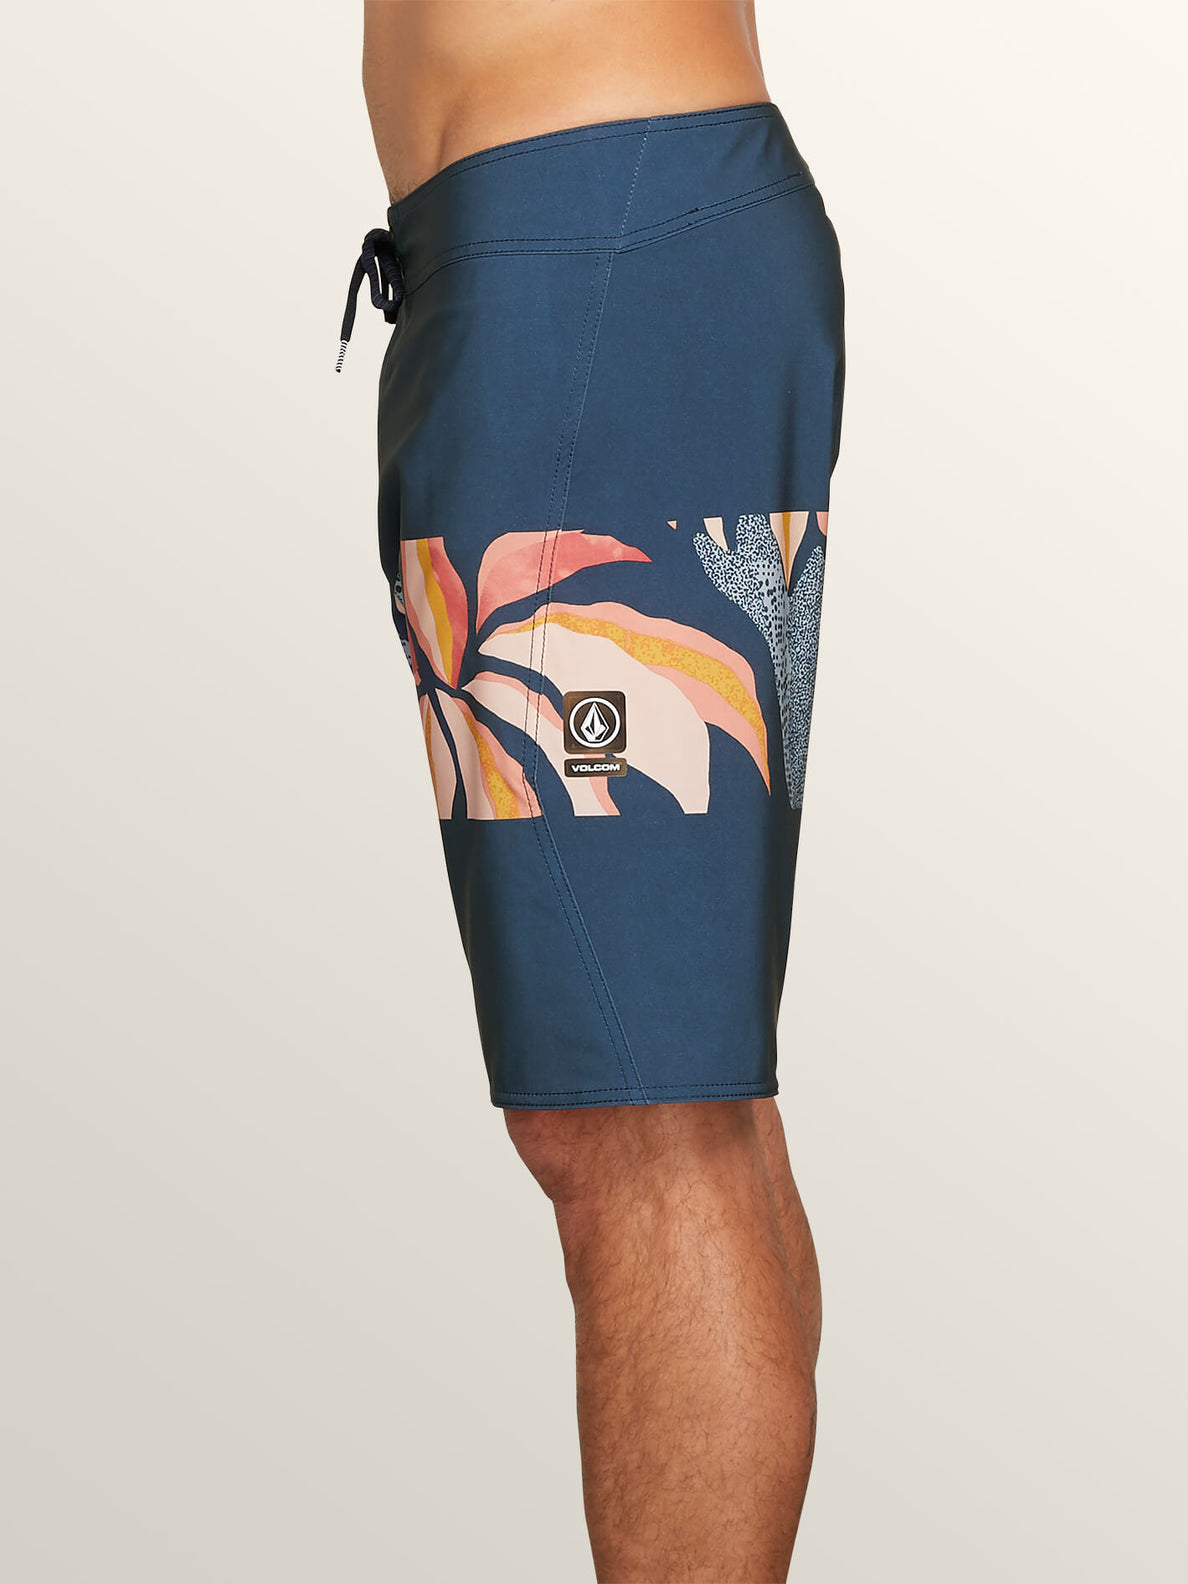 Macaw Mod Boardshorts In Melindigo, Alternate View